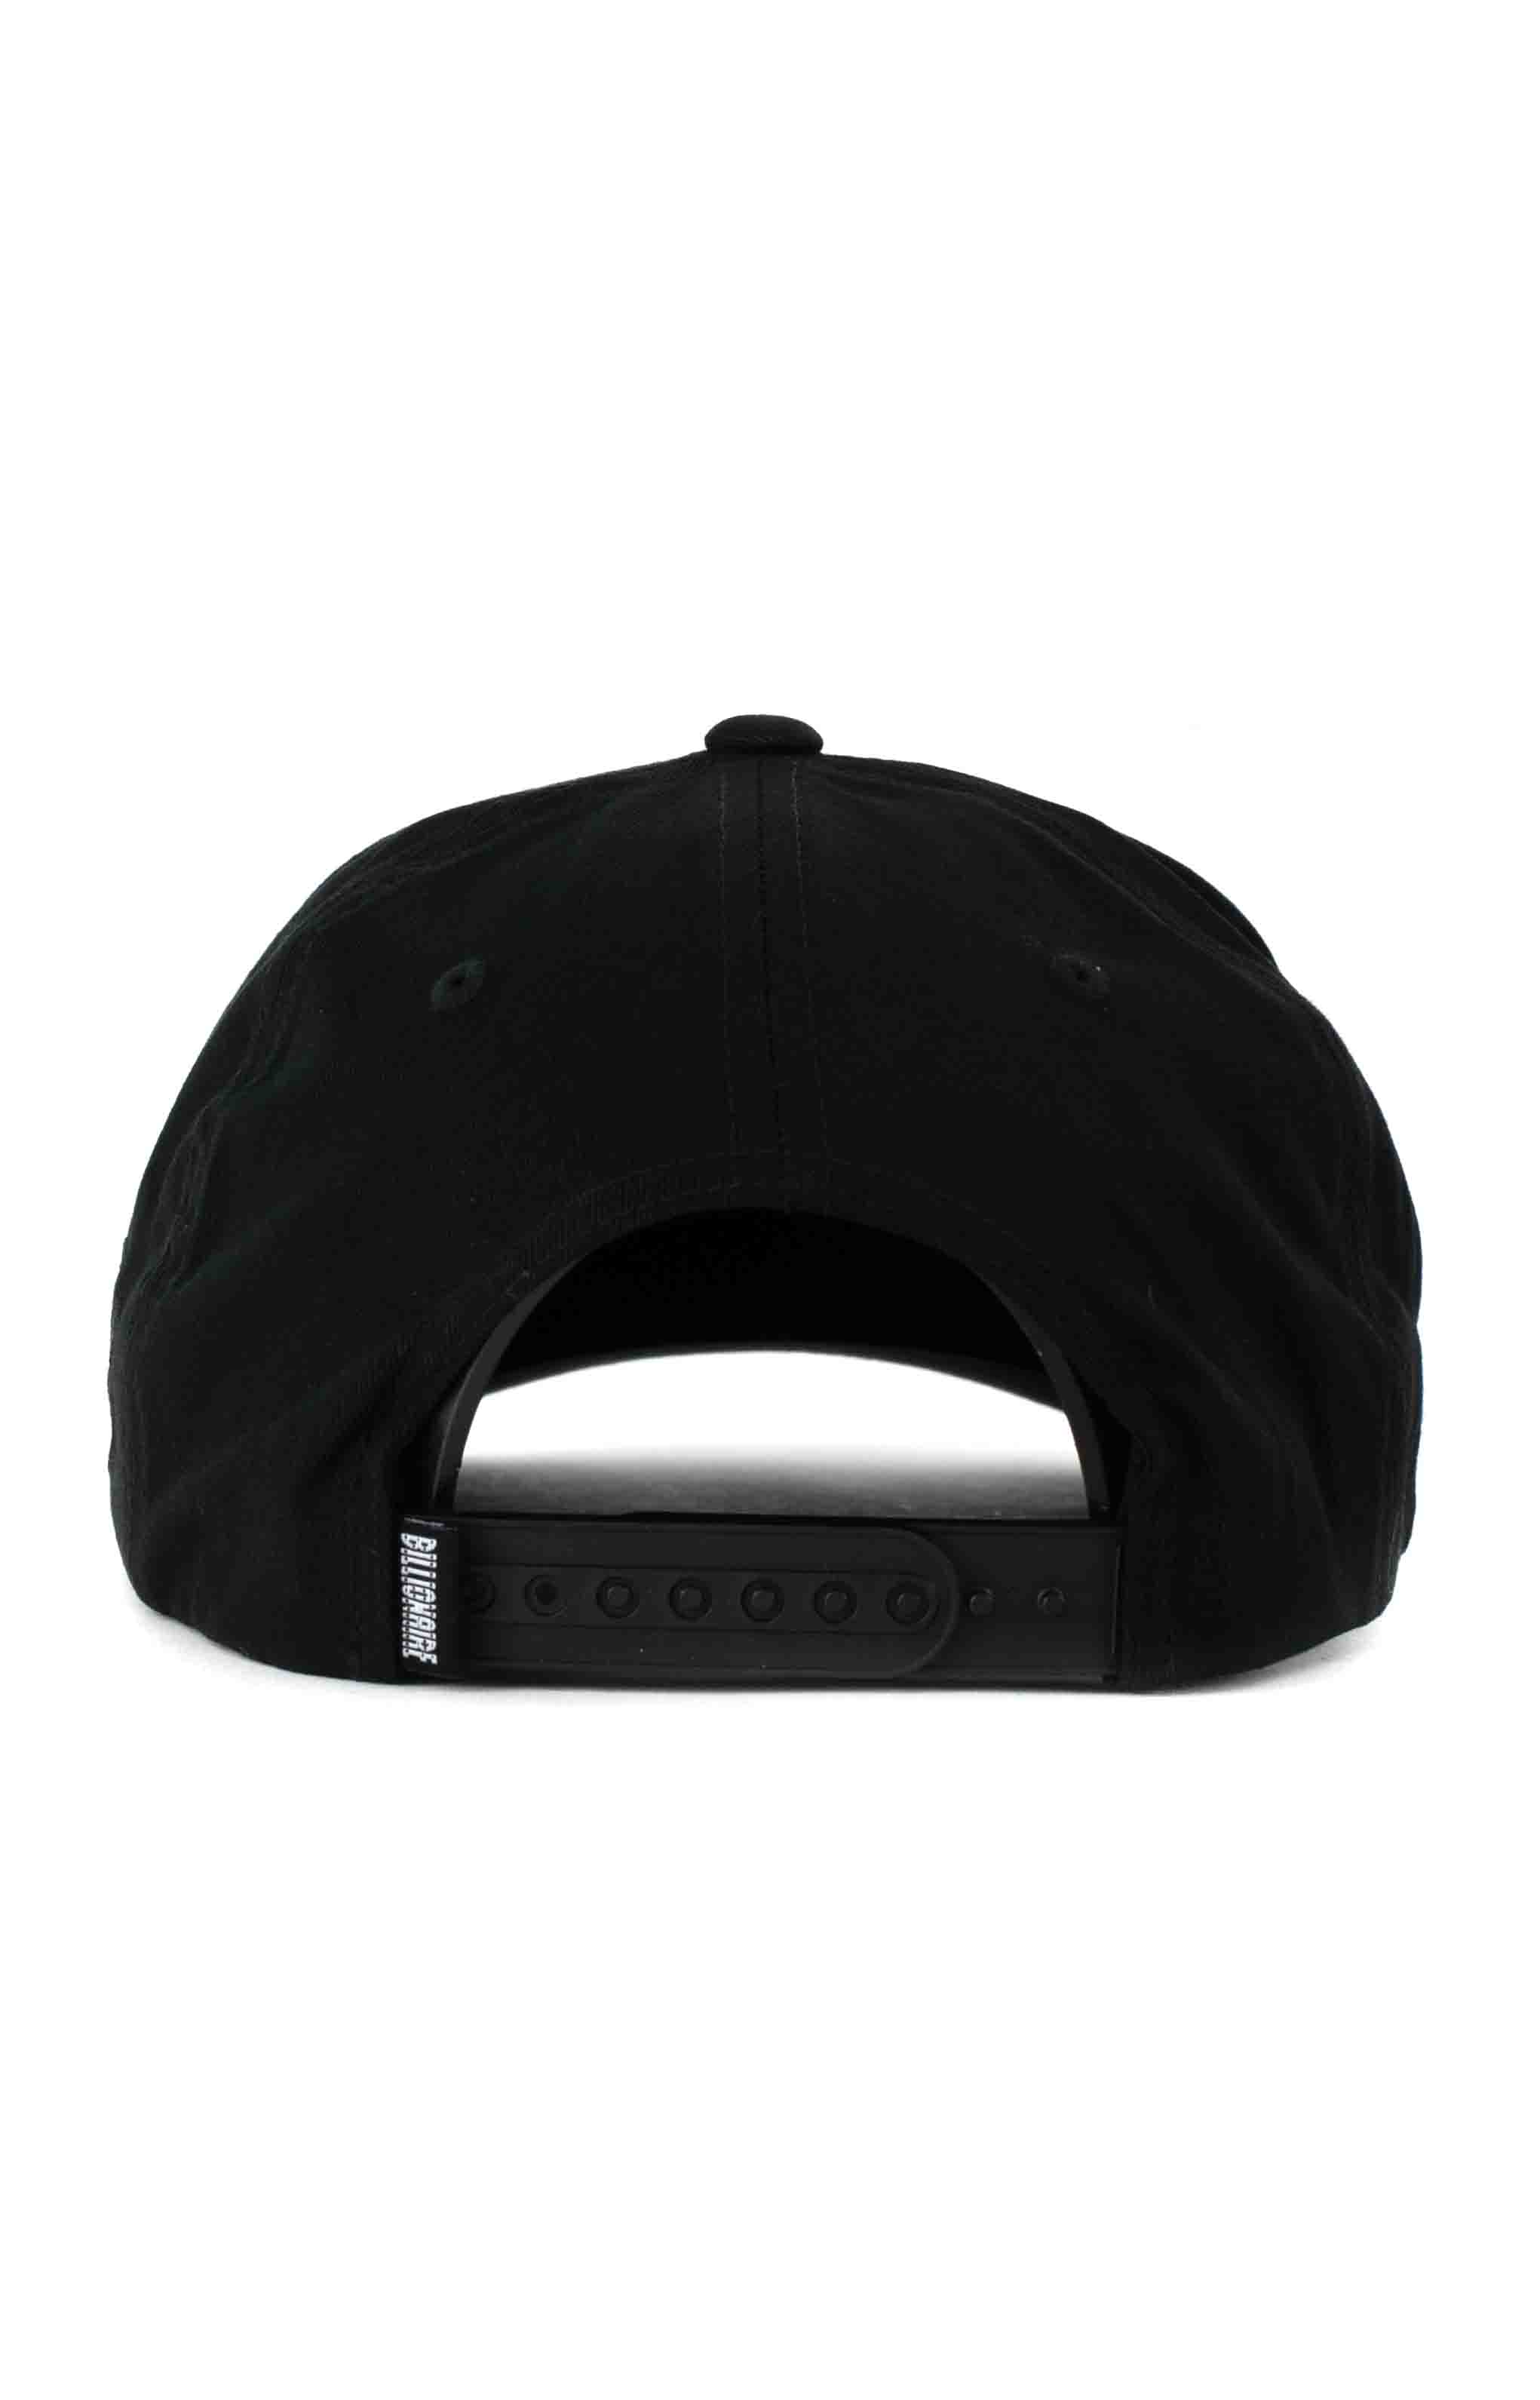 BB Arch Snap-Back Hat - Black 4